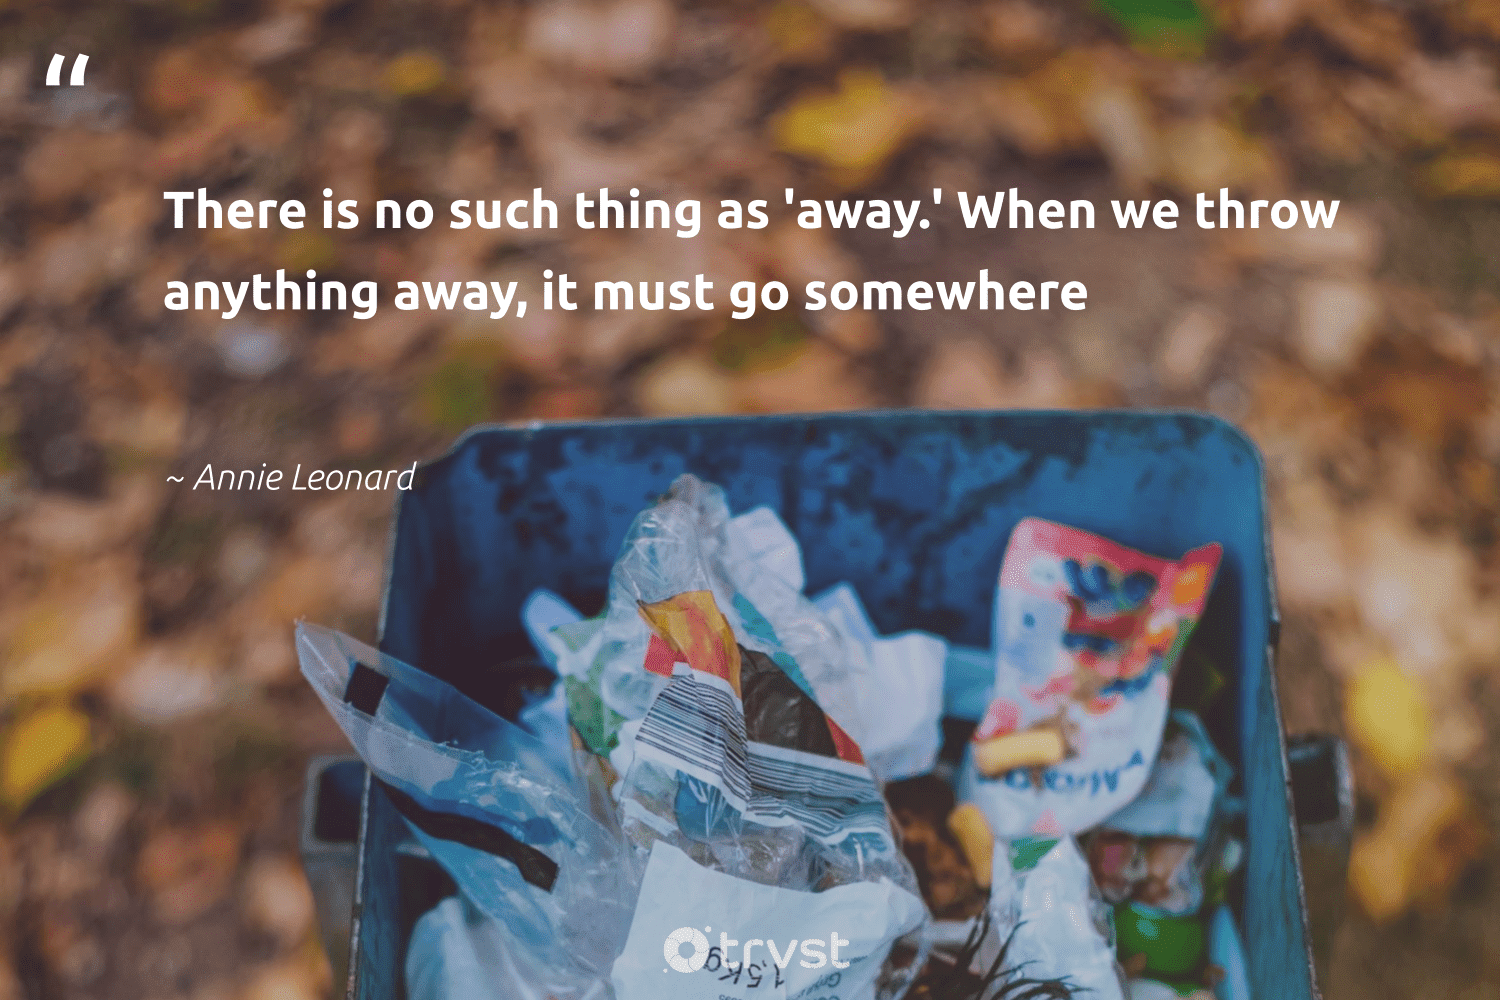 """""""There is no such thing as 'away.' When we throw anything away, it must go somewhere""""  - Annie Leonard #trvst #quotes #dosomething #dogood #sustainableliving #ecoconscious #betterfortheplanet #collectiveaction #takeaction #bethechange #noplanetb #beinspired"""